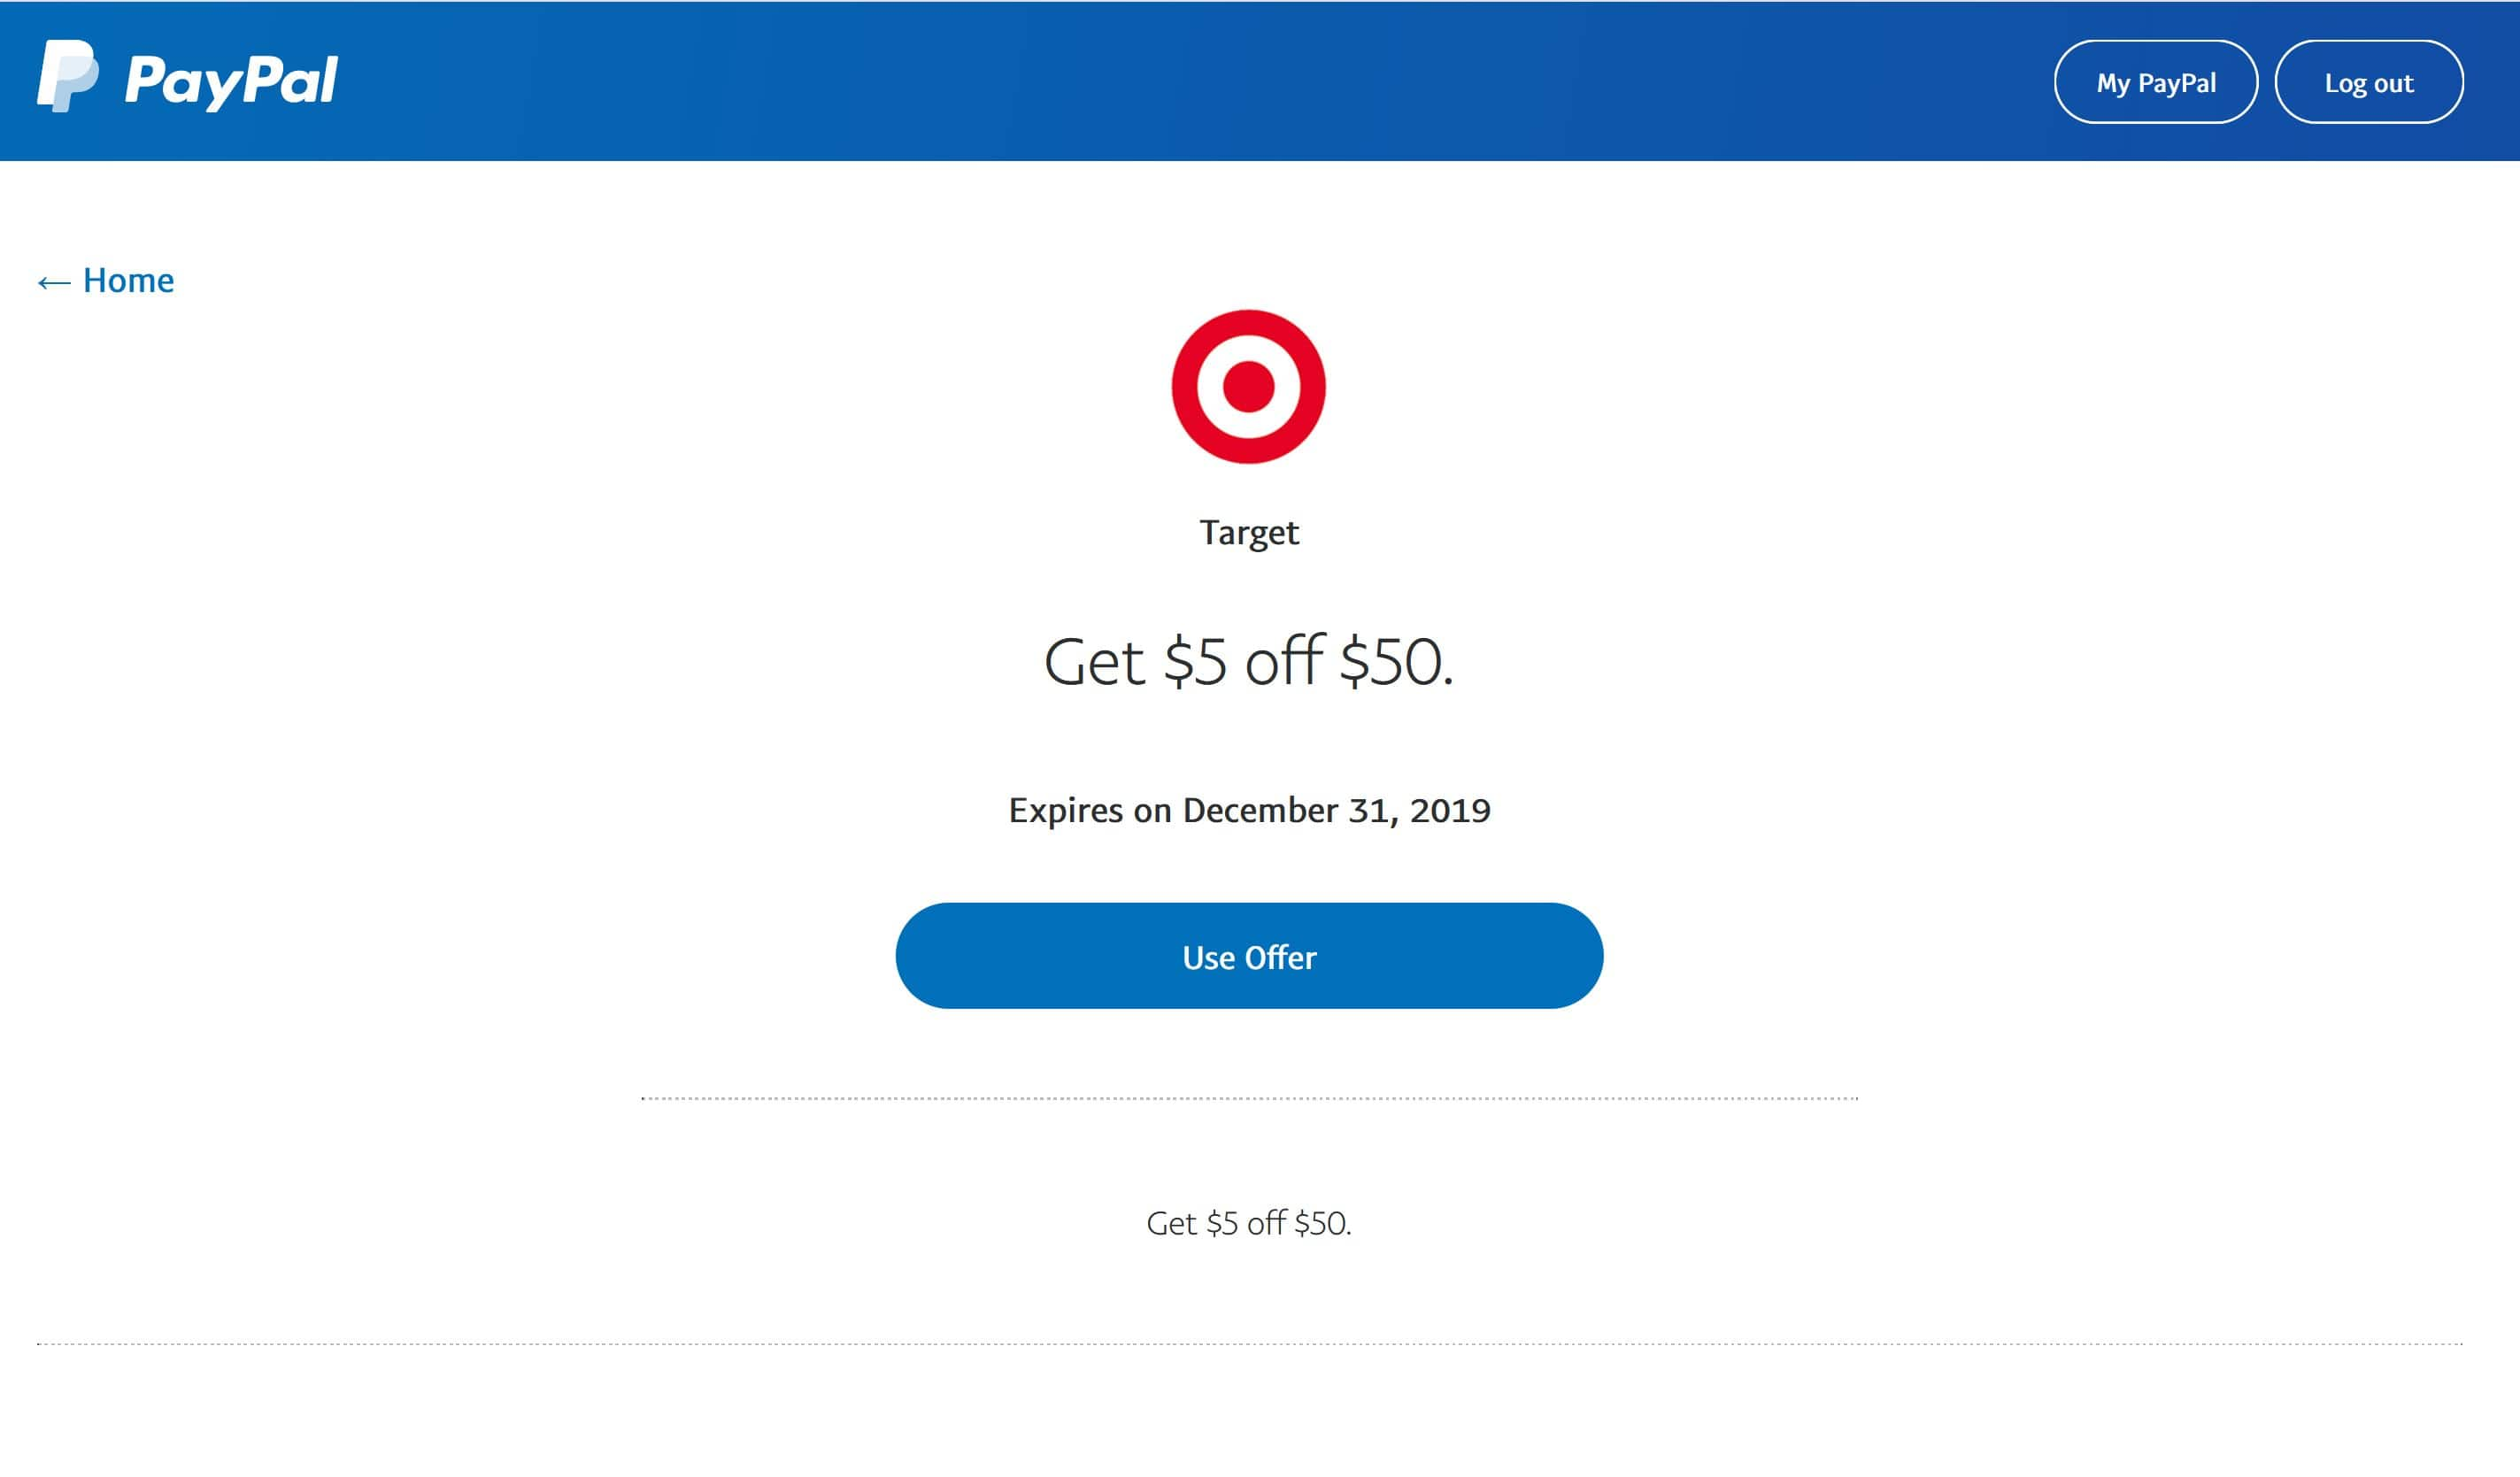 Paypal: Target $5 off $50 YMMV